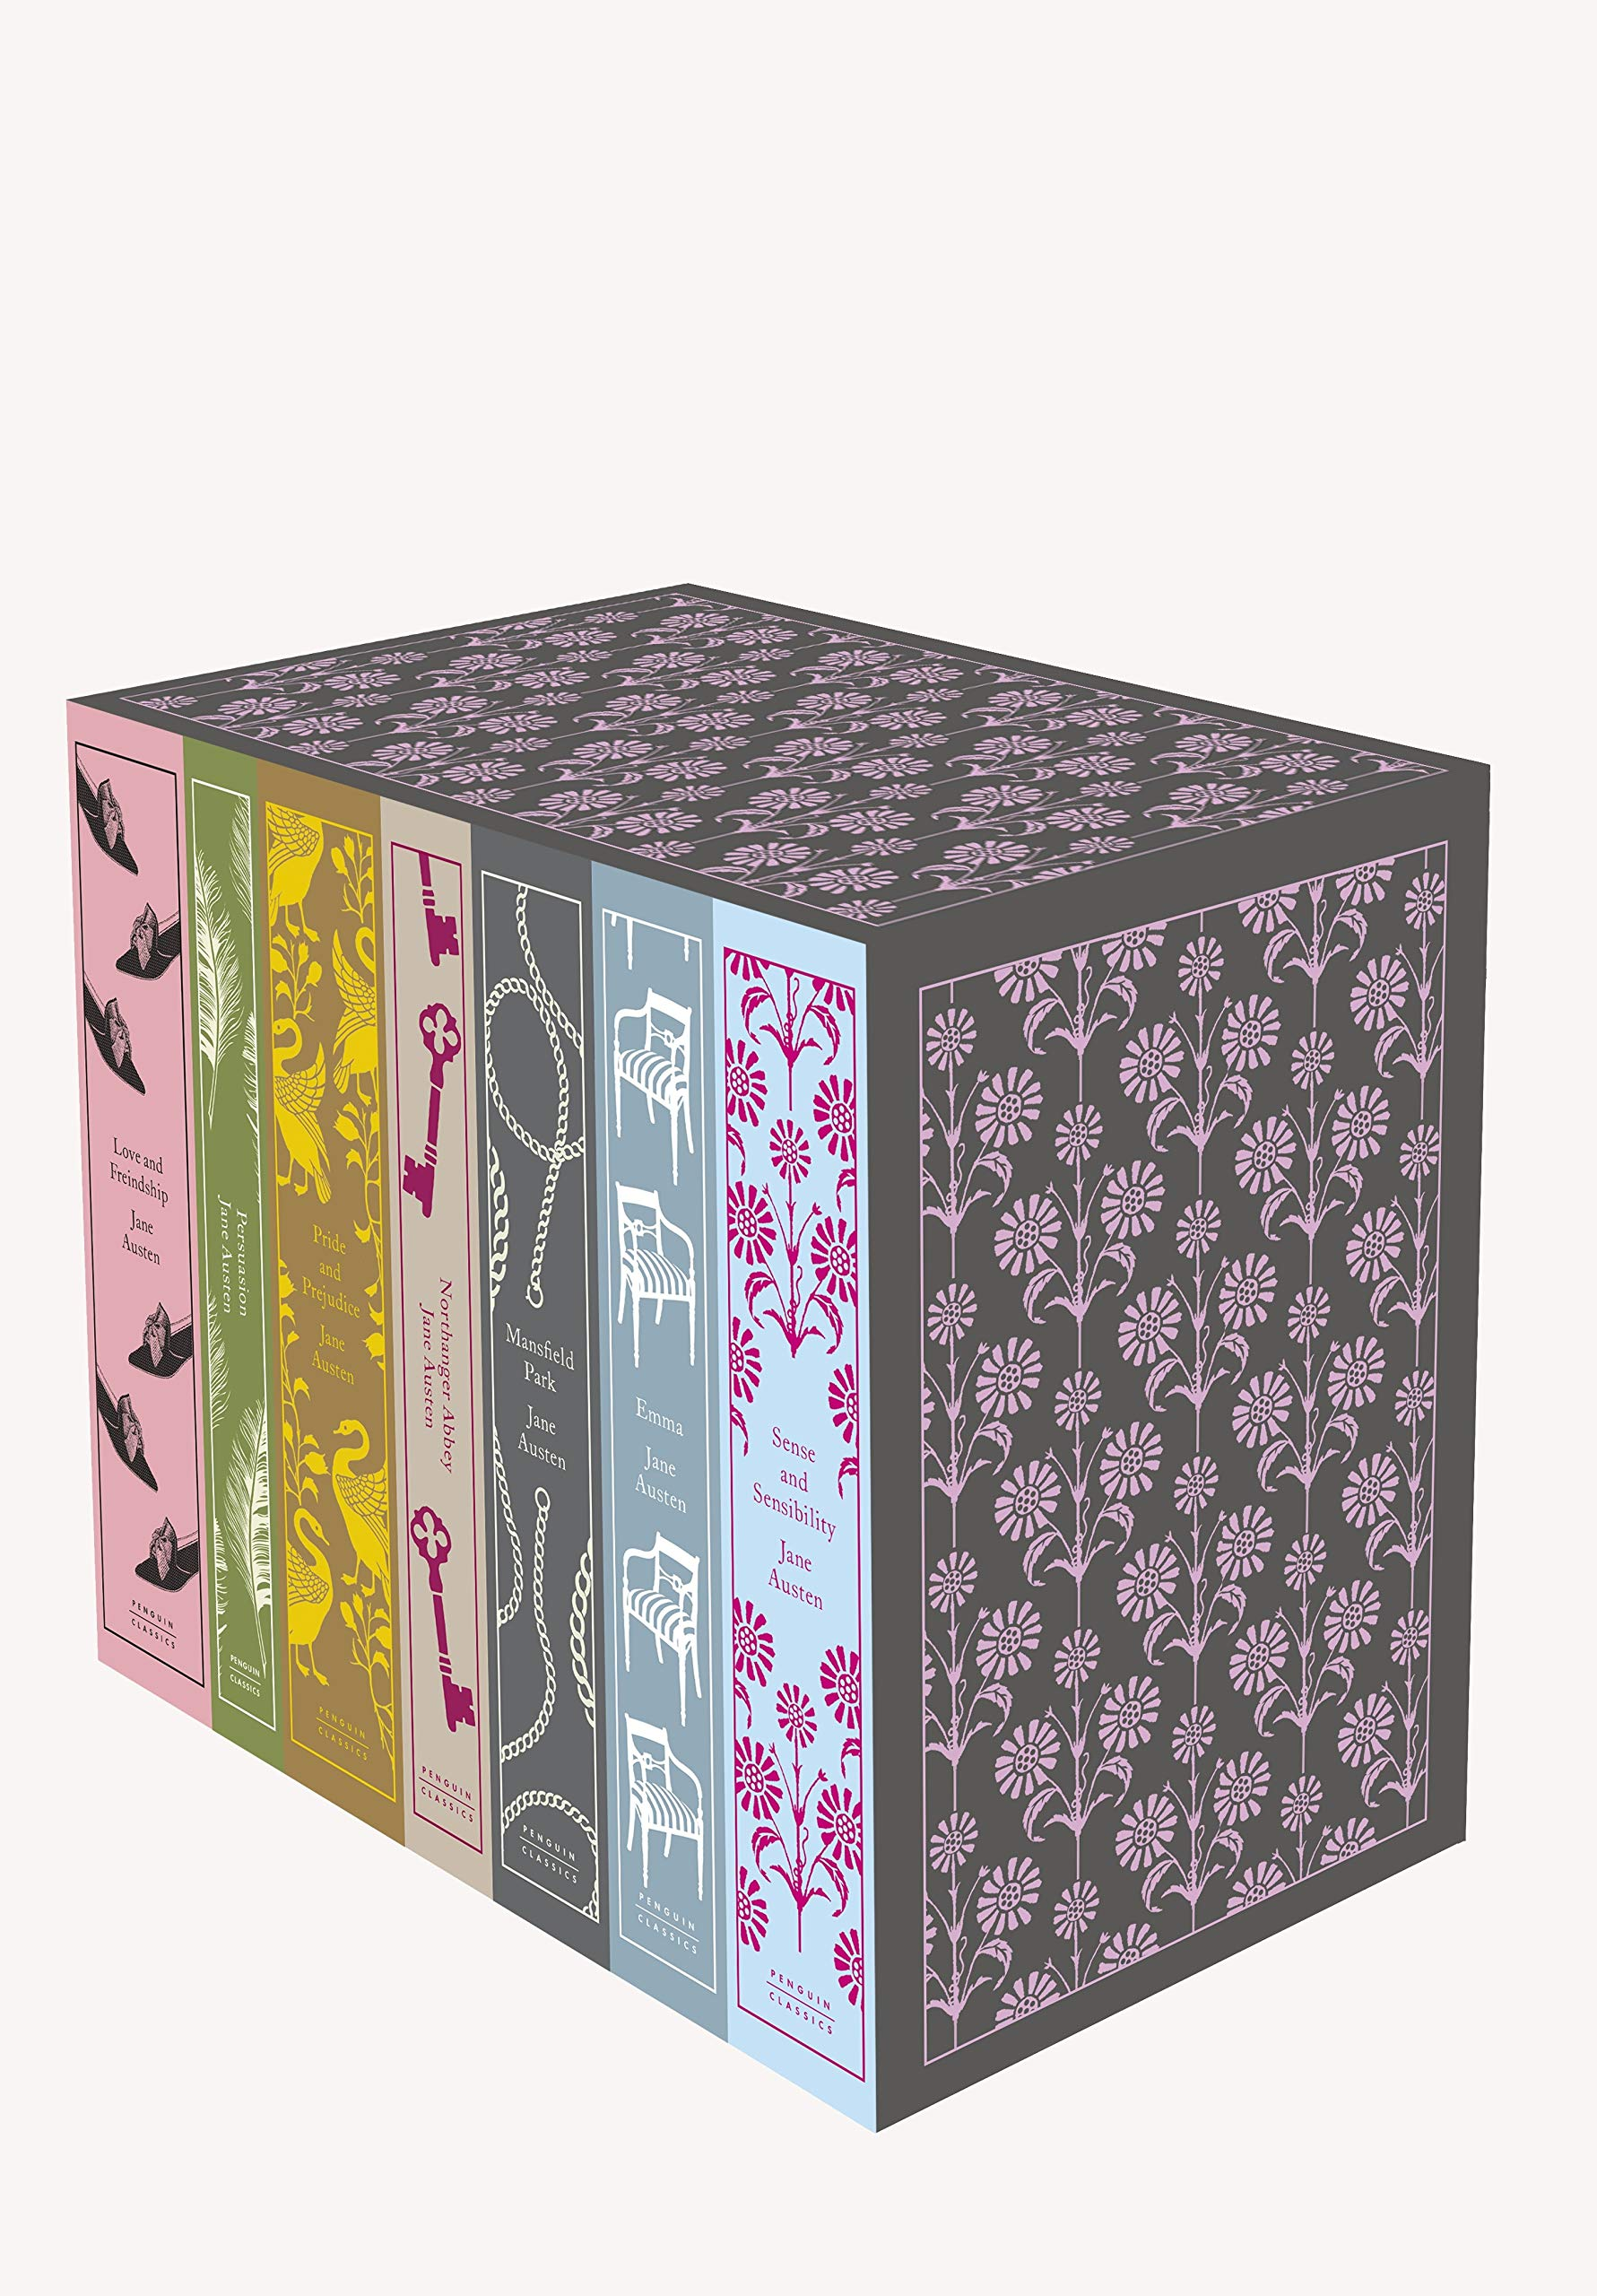 Jane Austen: The Complete Works 7-Book Boxed Set: Classics hardcover boxed set (Penguin Clothbound Classics) by Austen Jane